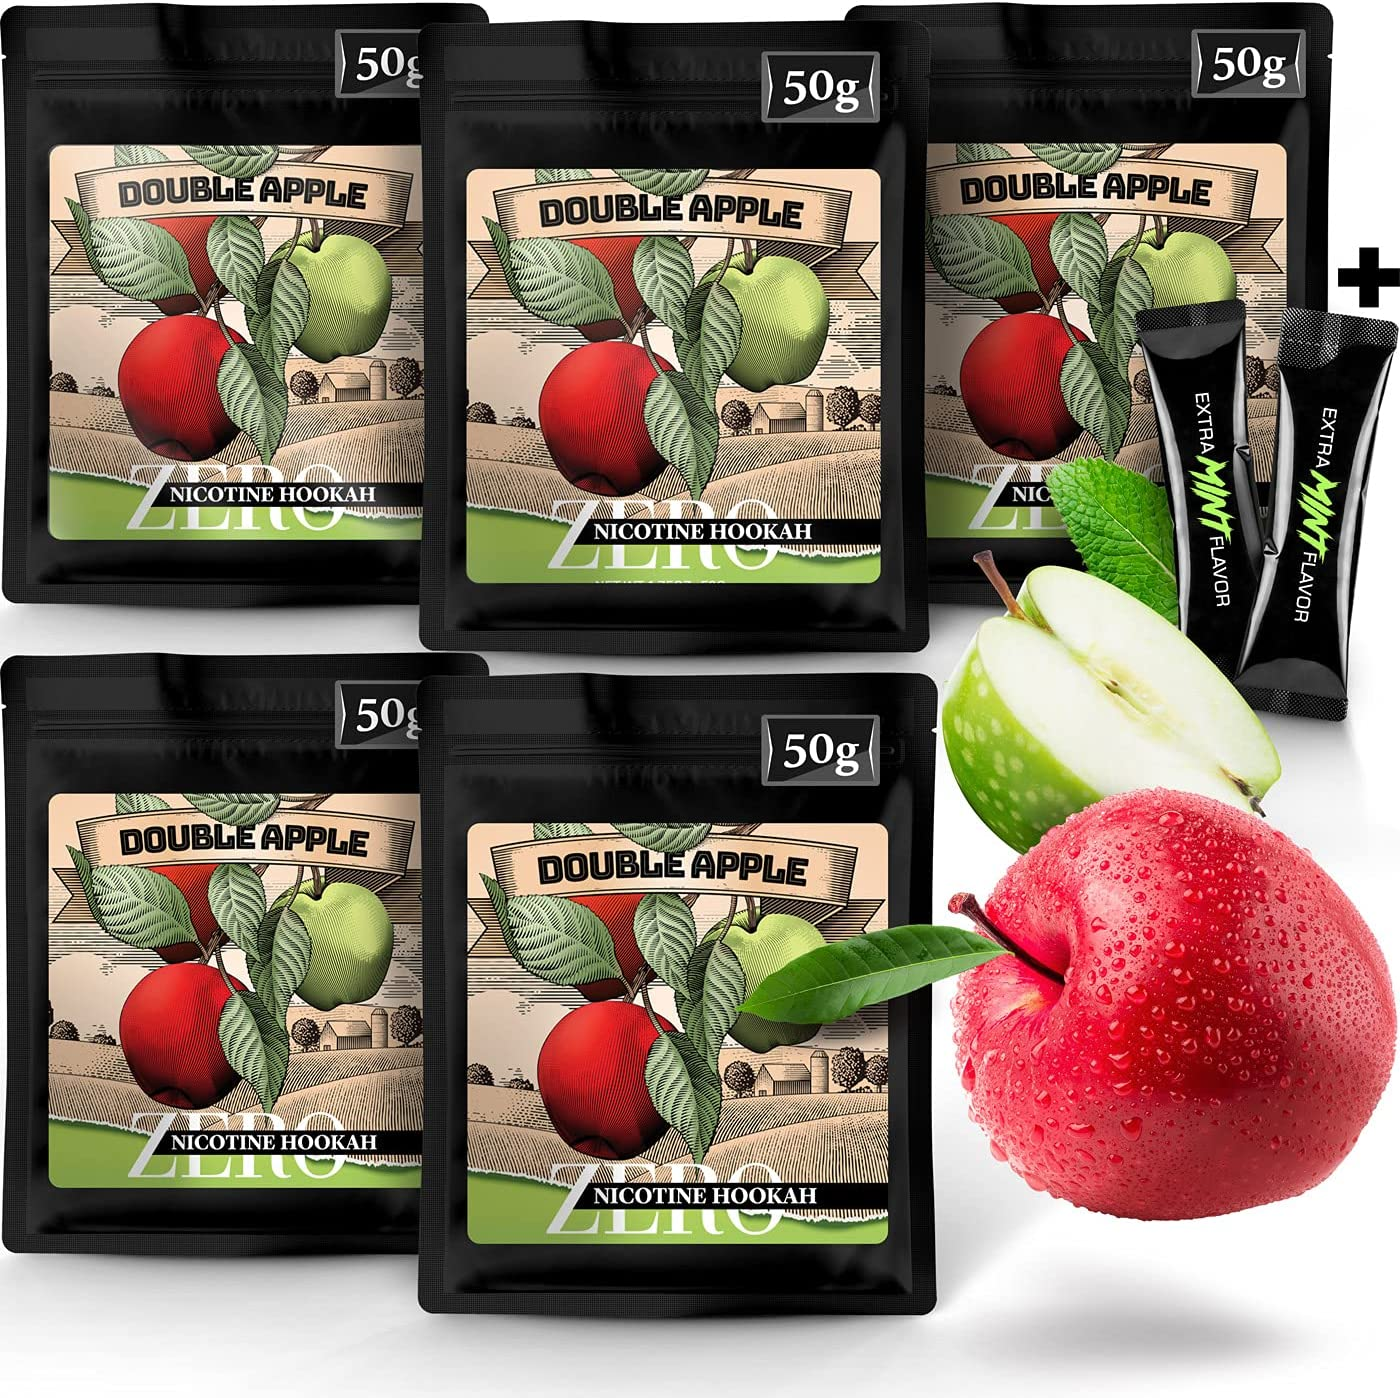 Hookah Flavors Tobacco Free and Nicotine Free. 5 Double Apple Exotic Hookah Shisha Flavors. Two Apples Herbal Molasses by Hook IT UP. (Pack of 5) 250g 8.8oz Total